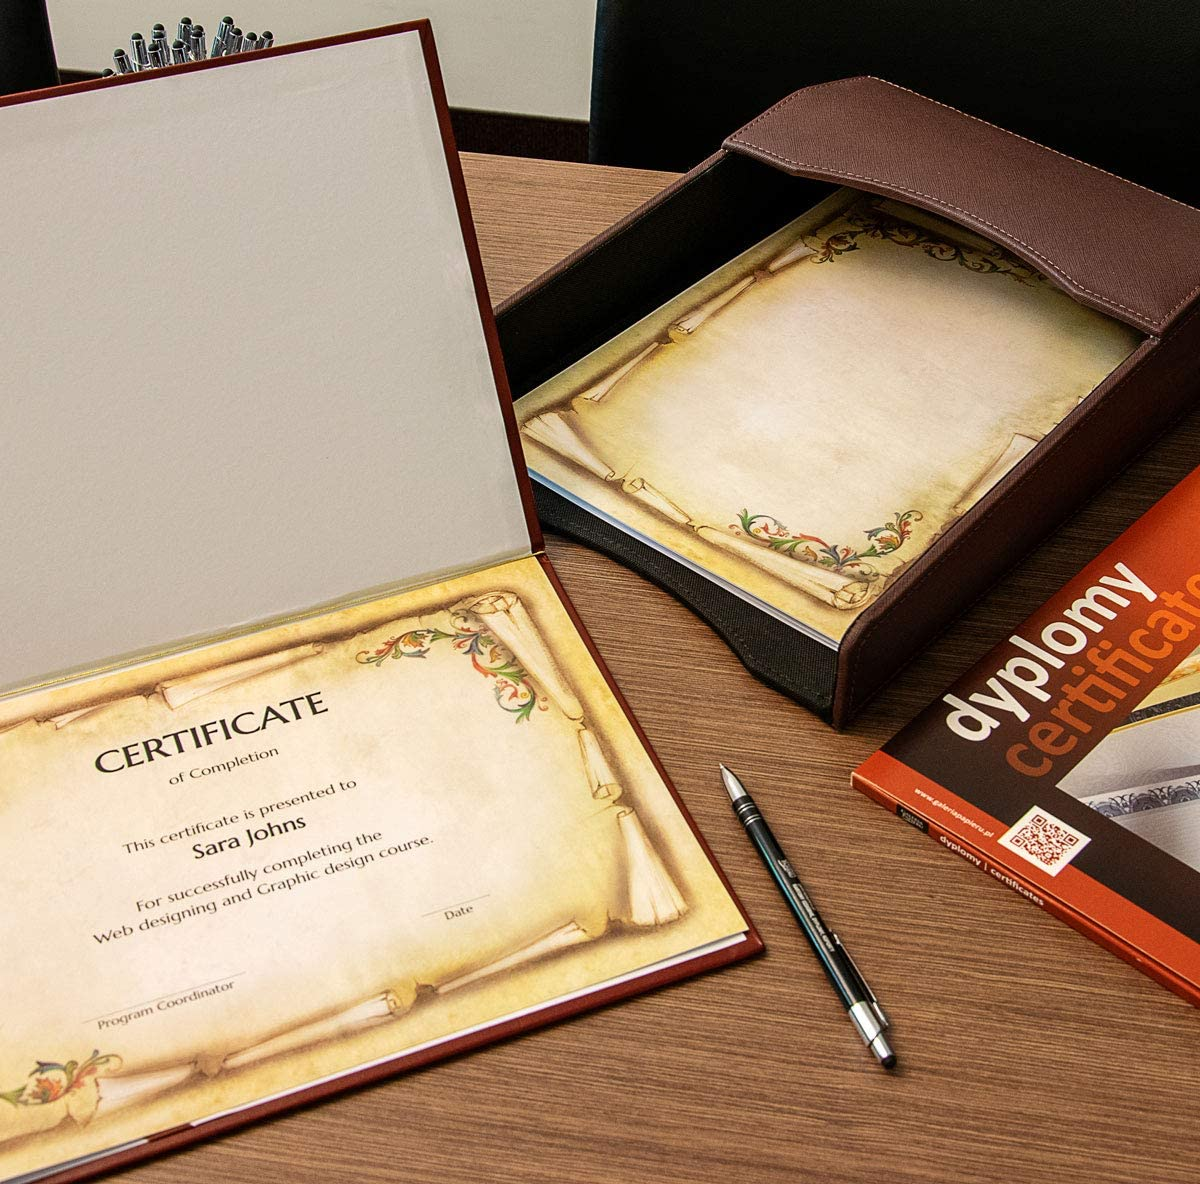 Art of Creation Certificate Award A4 Premium Satin Paper /'Soplica/' 25 Blank Sheets per Pack Over Twice as Thick as Regular Paper Thick 170 GSM Page Eligible for Ink and Laser Printers